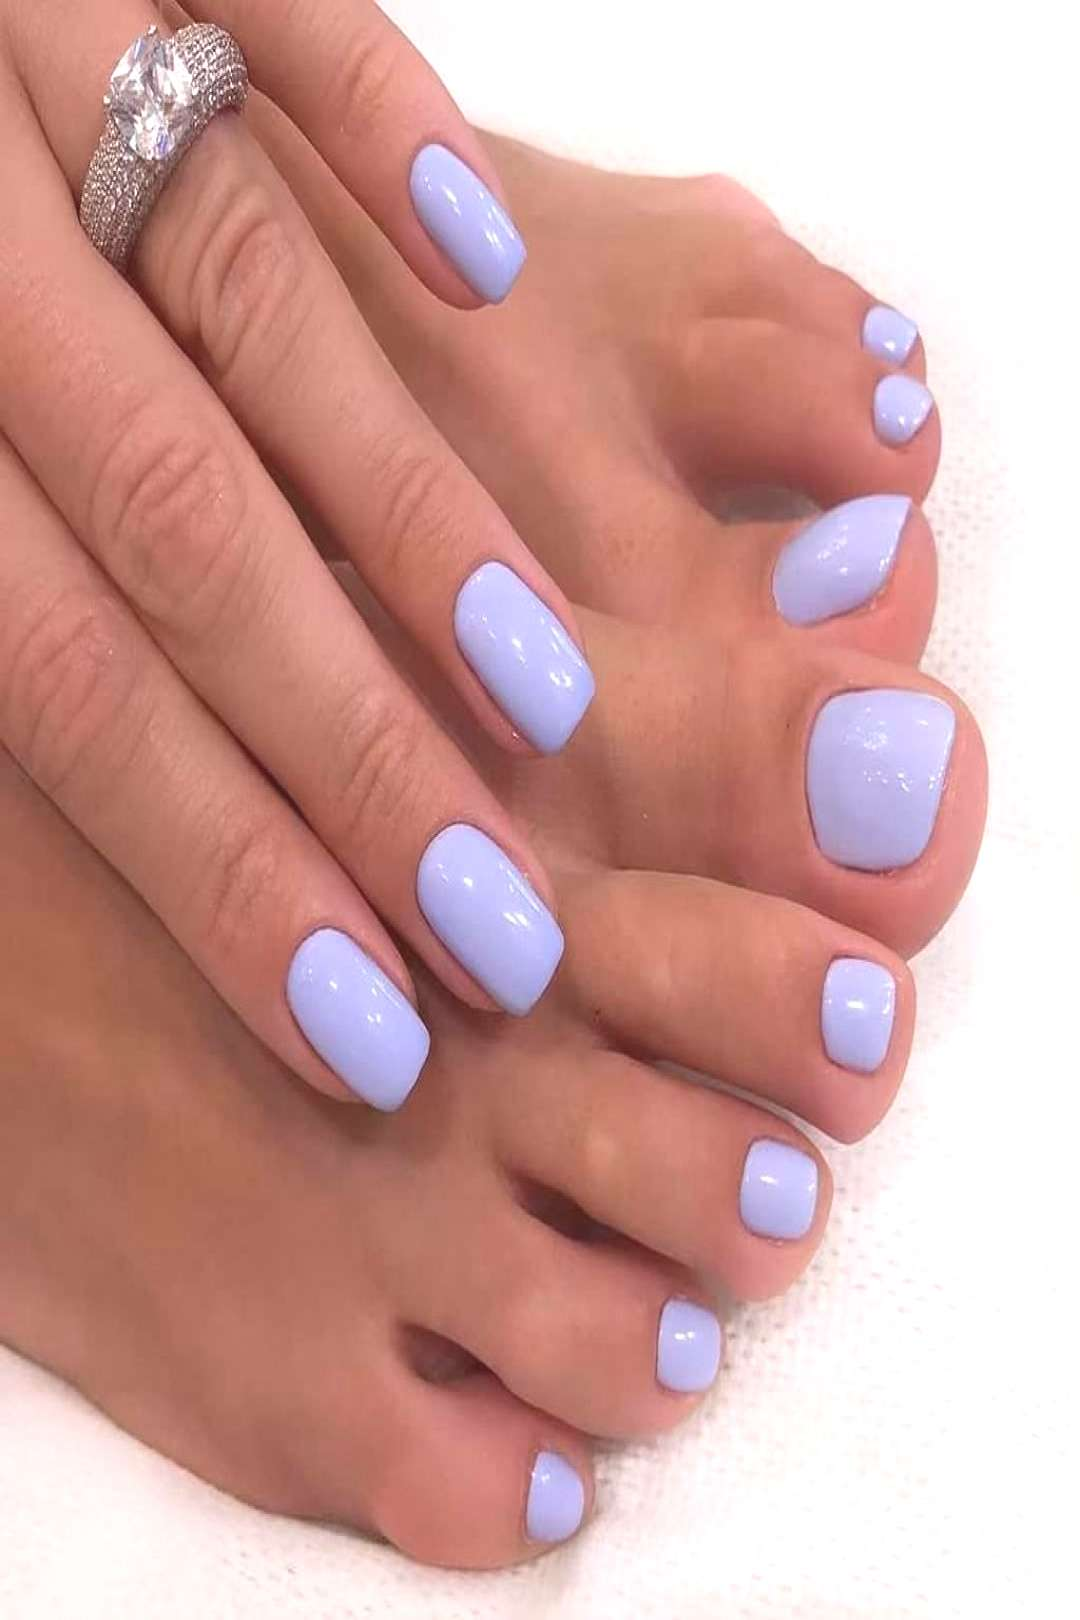 43 Best Toe Nails Design Ideas For Spring And Summer Style 43 Best Toe Nails Design Ideas For Sprin